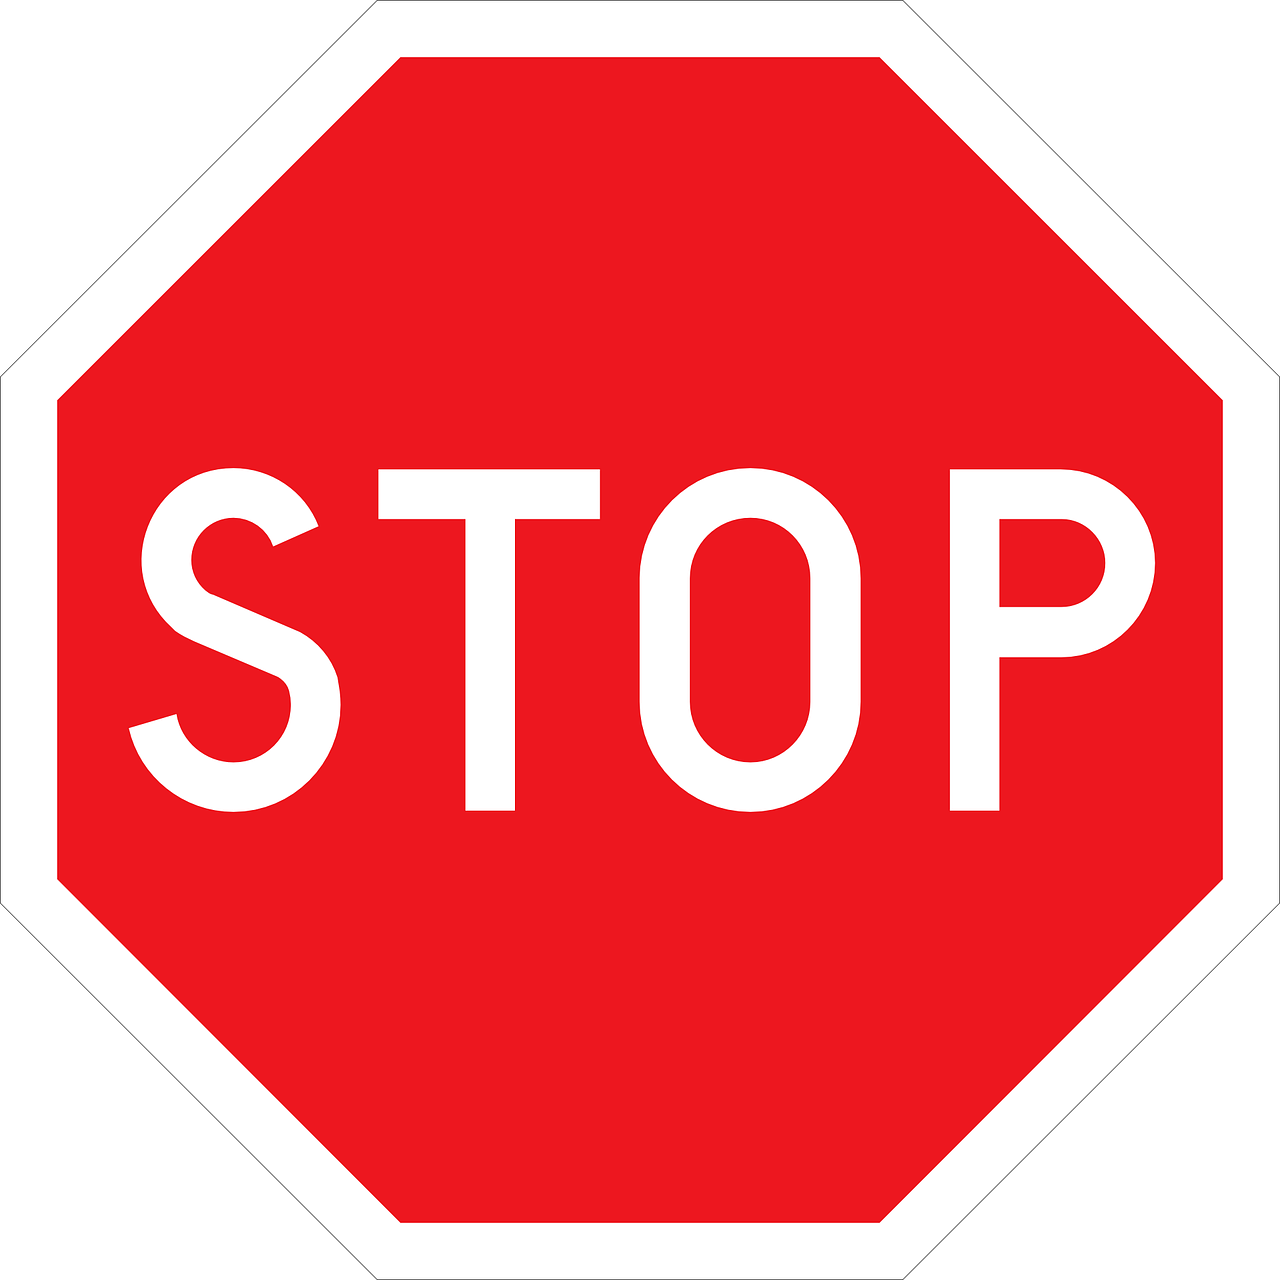 stop road sign roadsign free photo